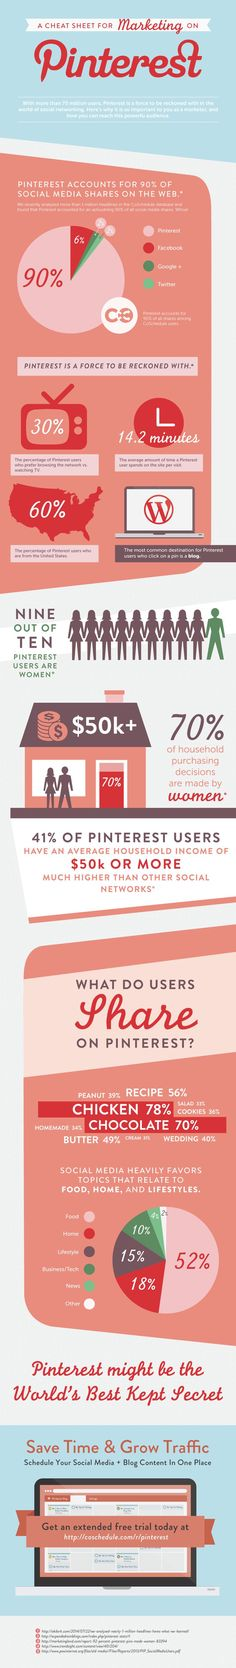 A Cheat Sheet For Marketing On Pinterest [Infographic] (The one thing I would caution about is the 90% share, if you read carefully that's for co schedule users. So it's a biased result, however, it is fair to say that it shows how powerful Pinterest can be) Infographic by @coschedule